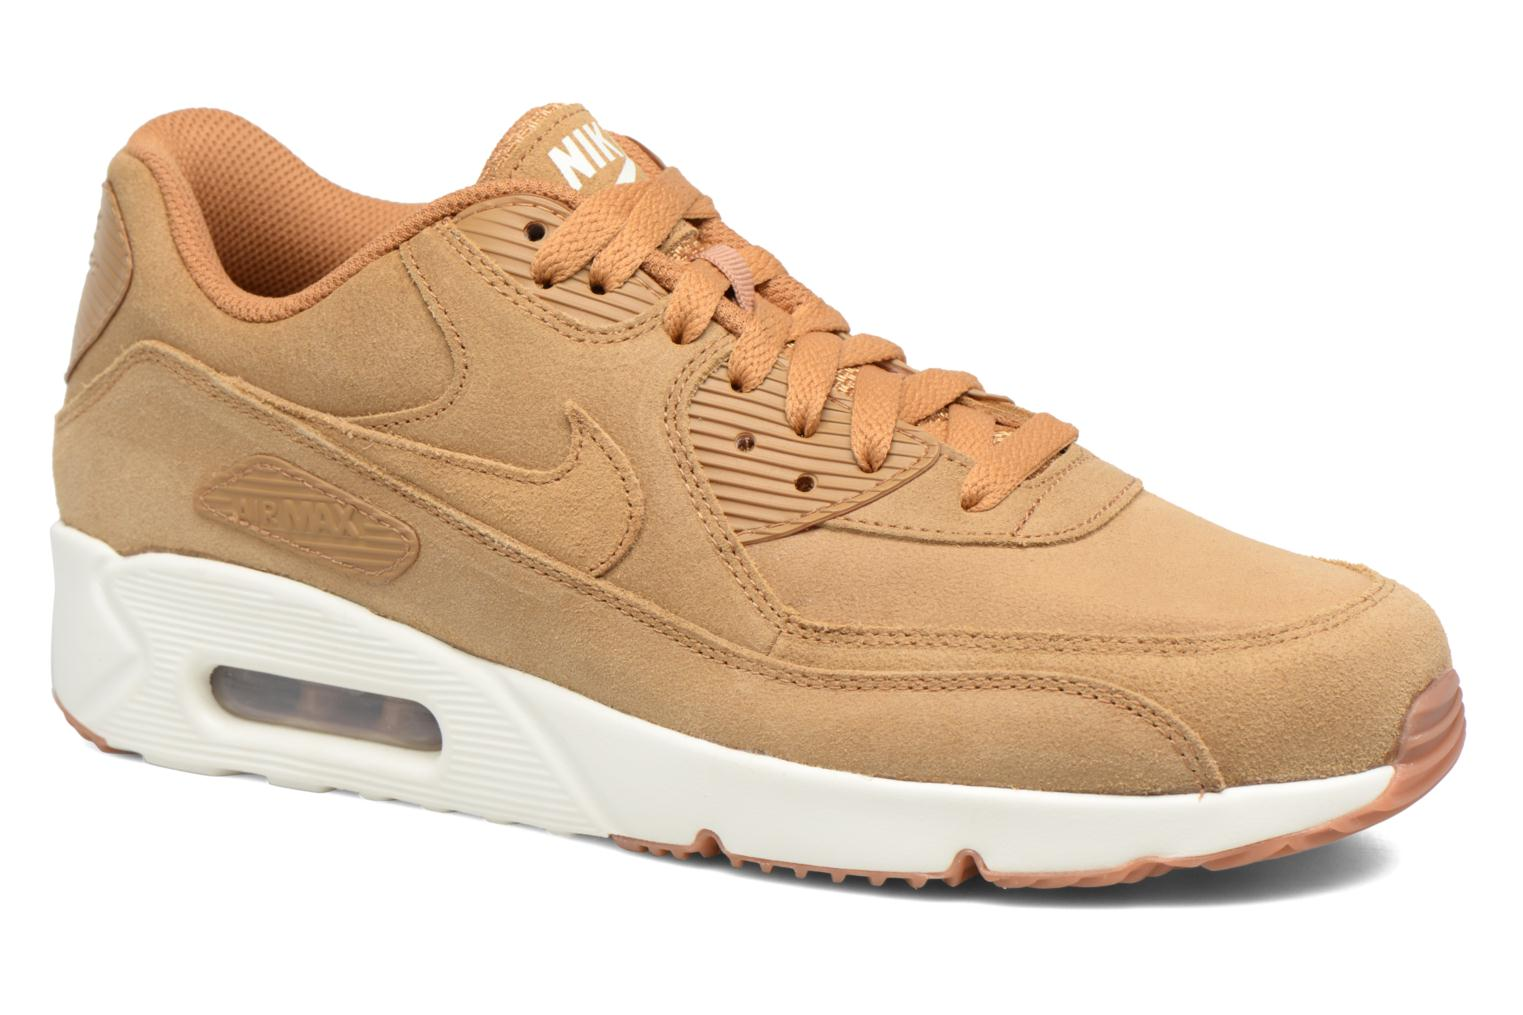 Air Max 90 Ultra 2.0 Ltr Flax/Flax-Sail-Gum Med Brown